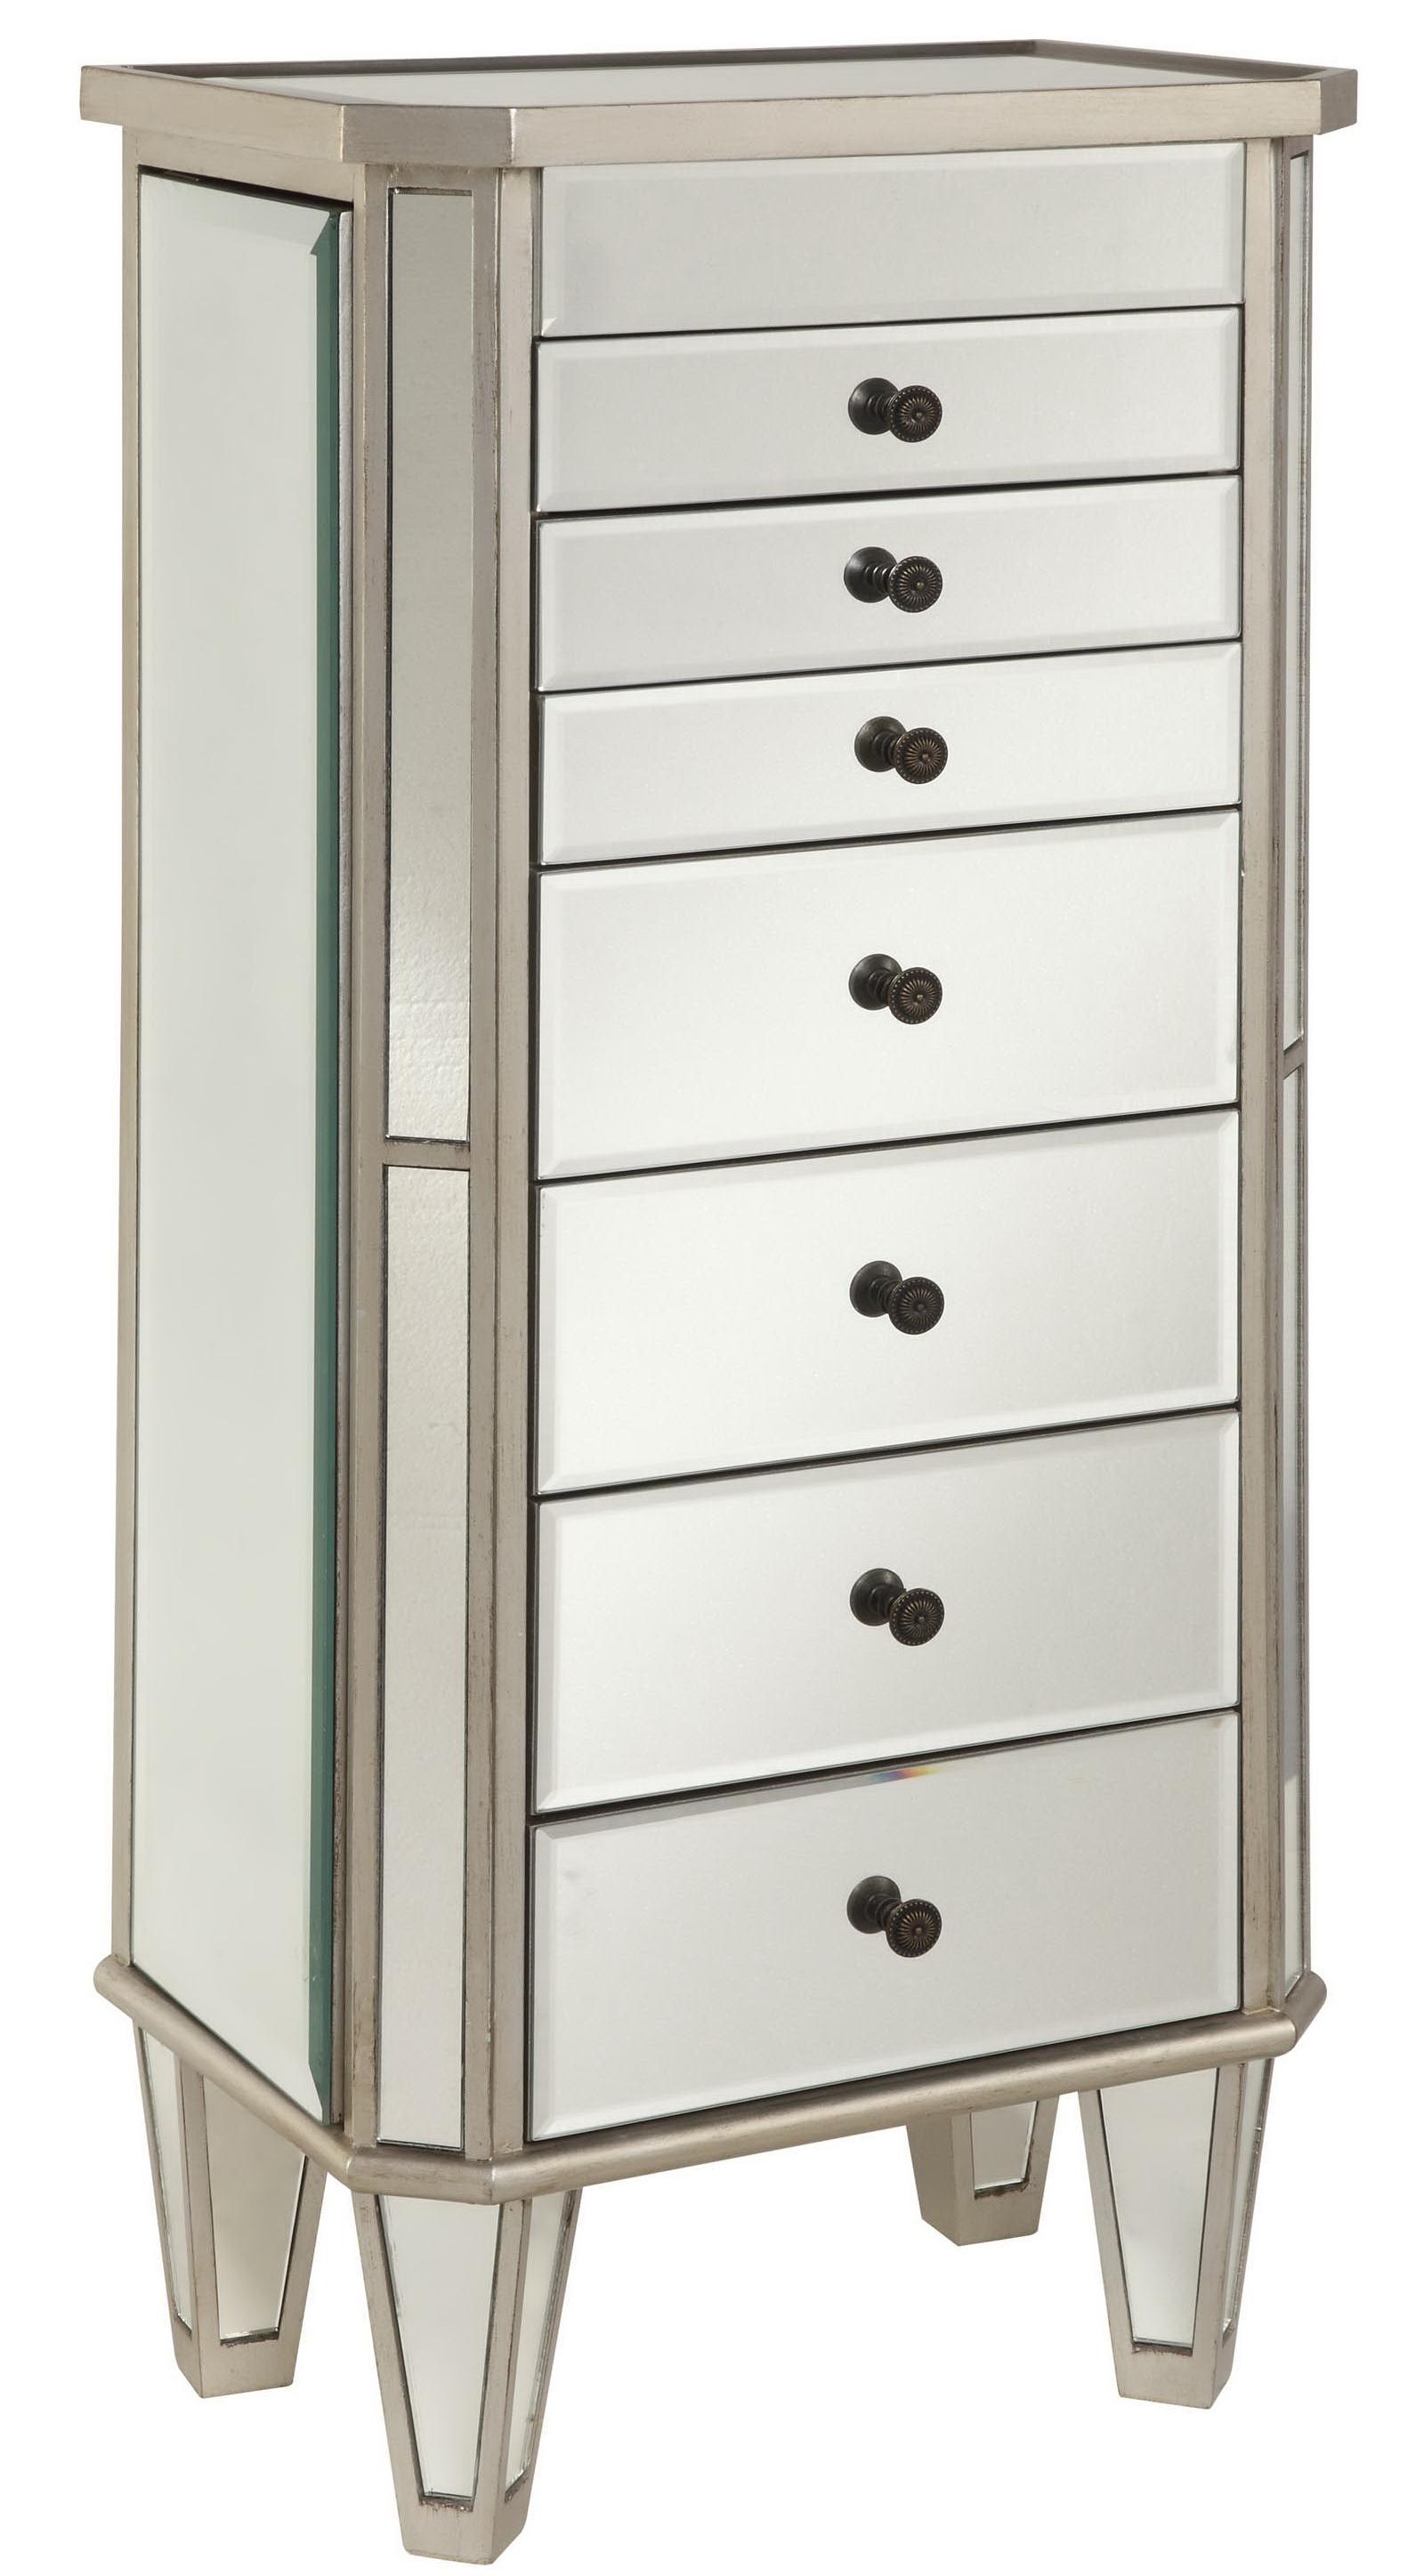 Powell Jewelry Armoire Mirrored Jewelry Armoire - Item Number: 233-314